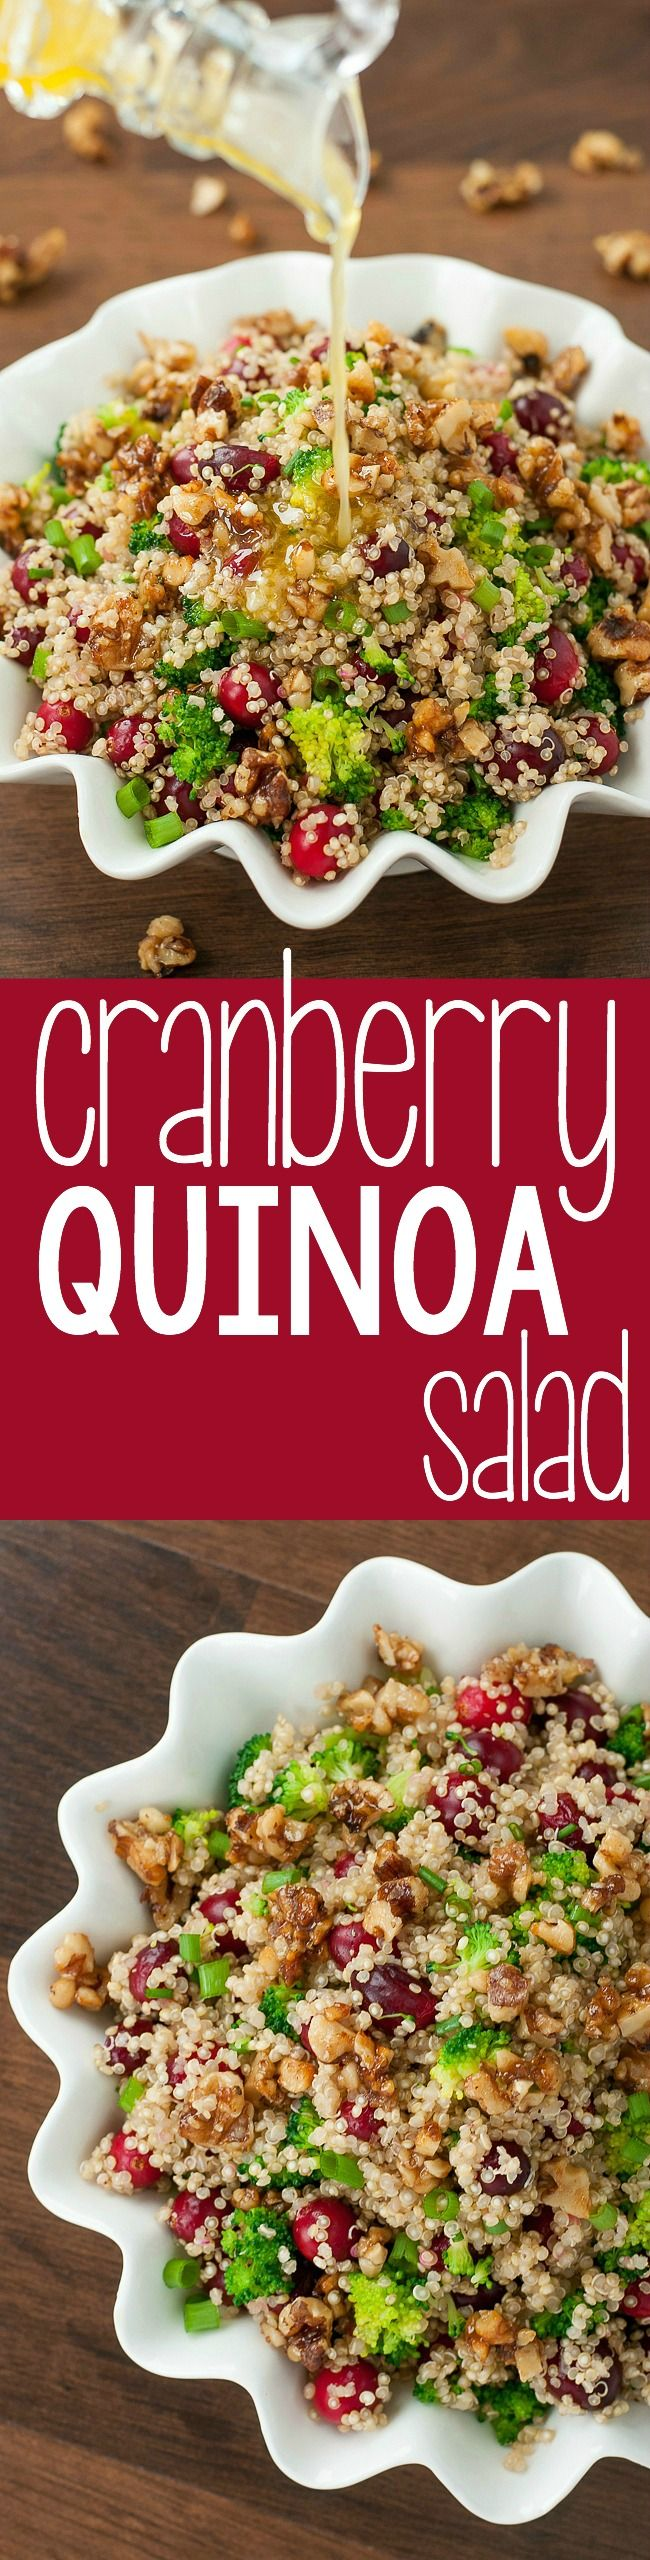 We're in love with this healthy gluten-free Cranberry Quinoa Salad!: